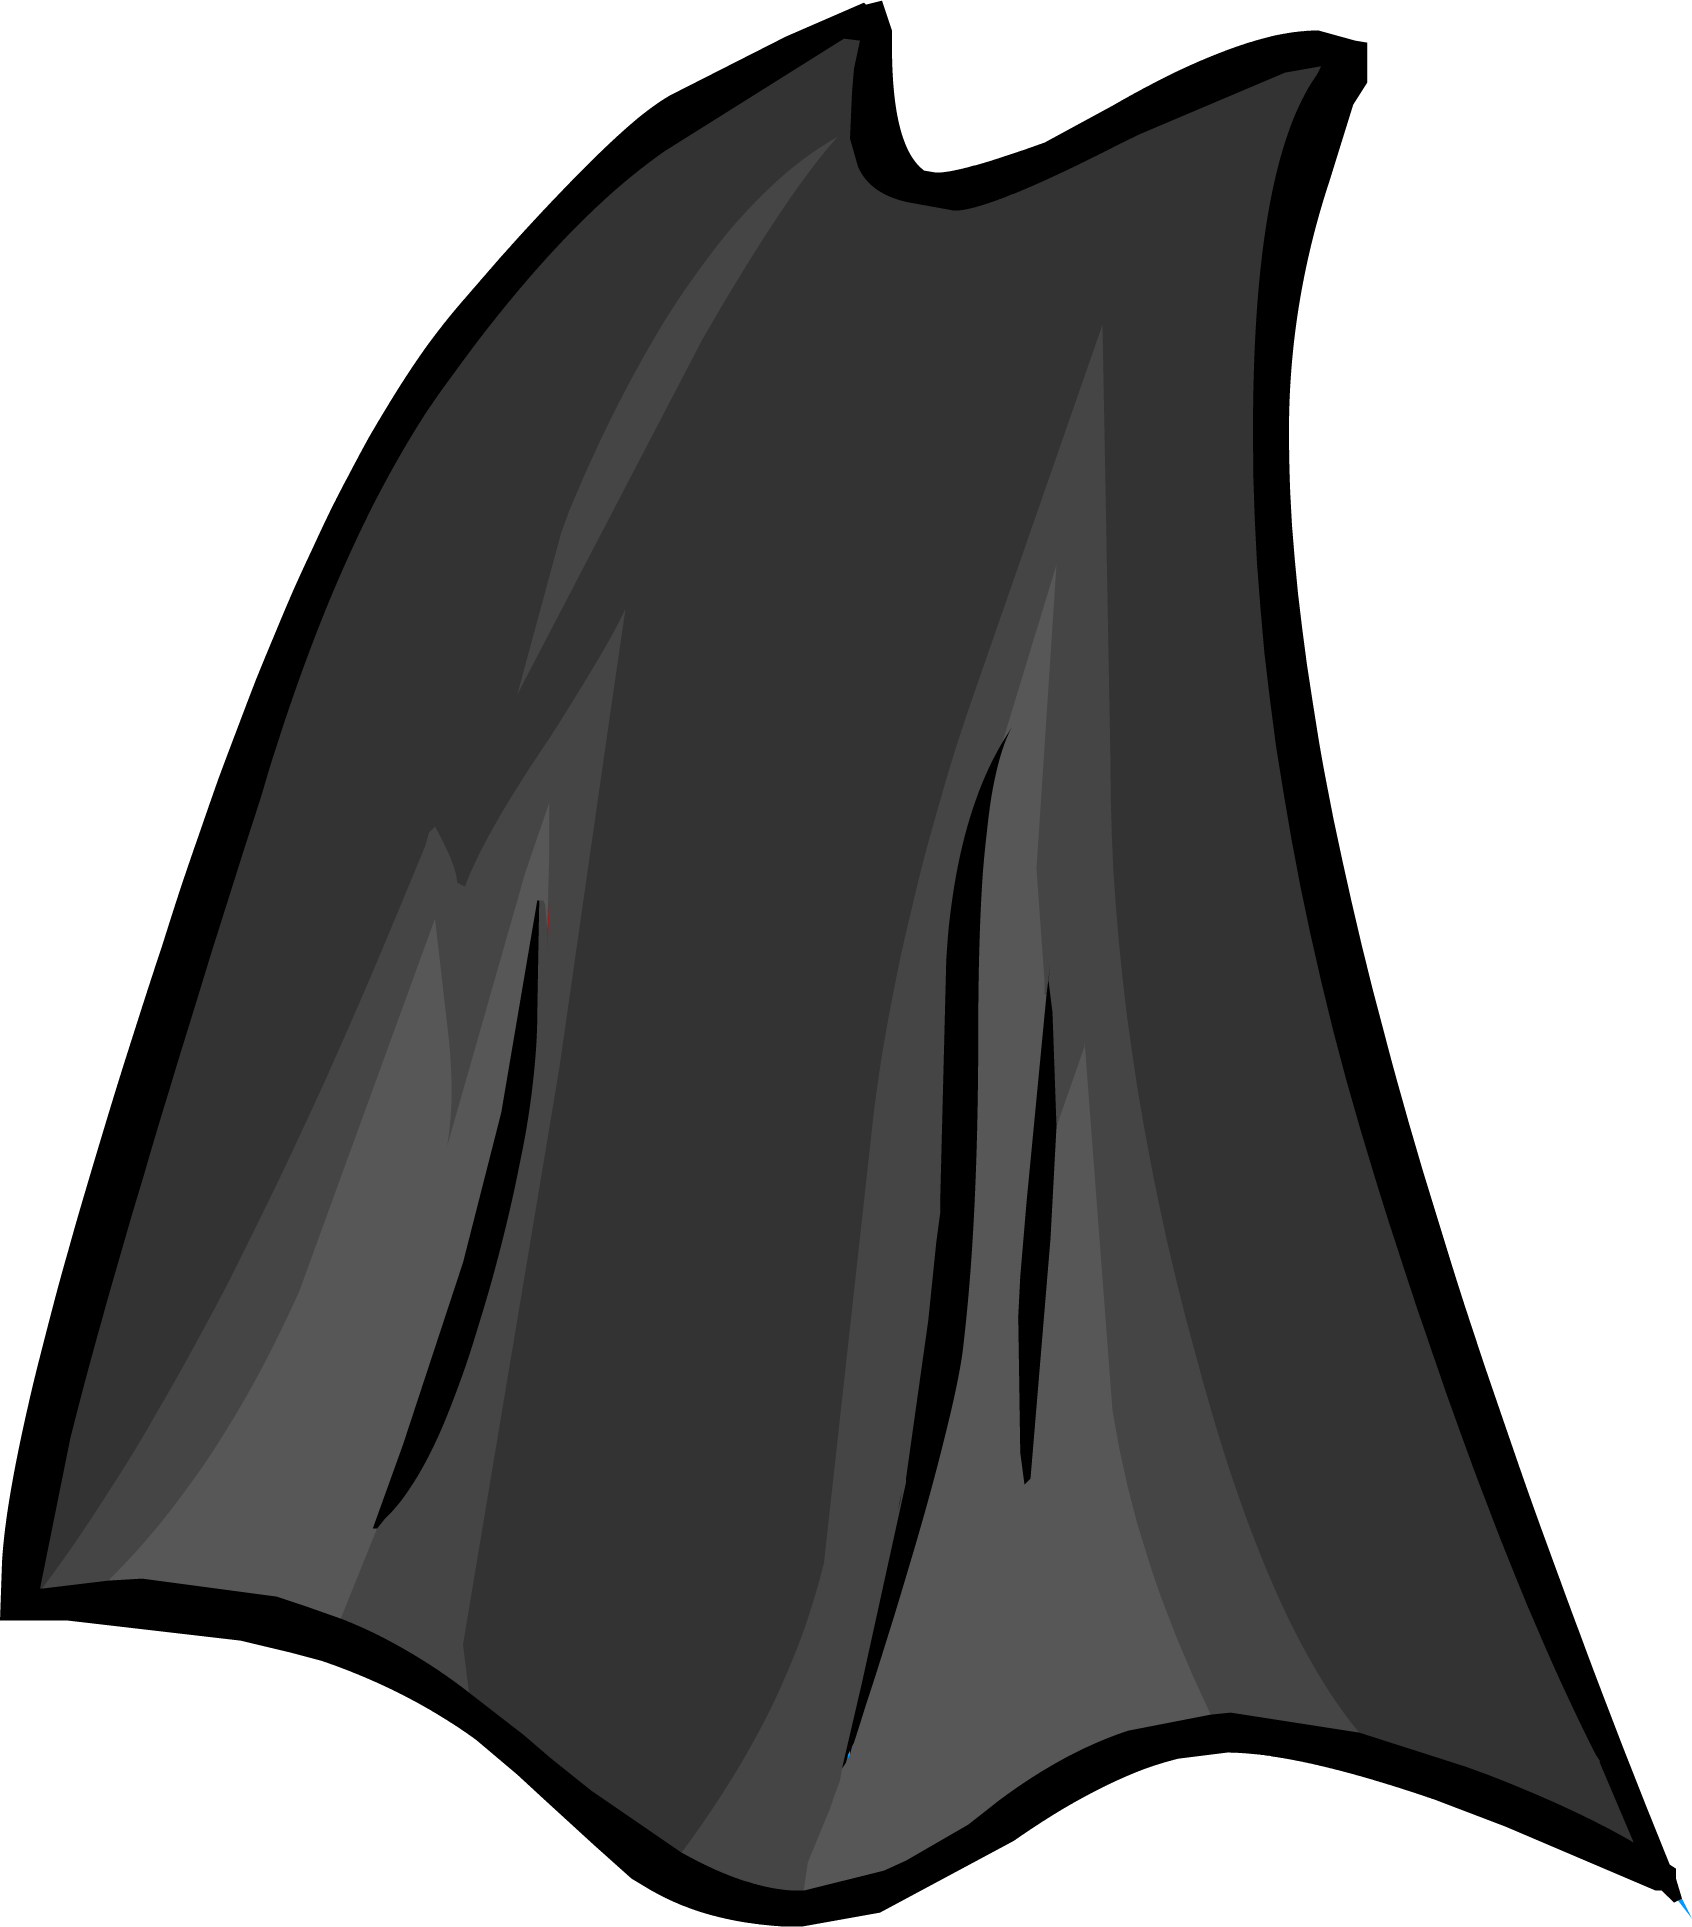 black cape club penguin wiki fandom powered by wikia igloo clip art free igloo clipart png